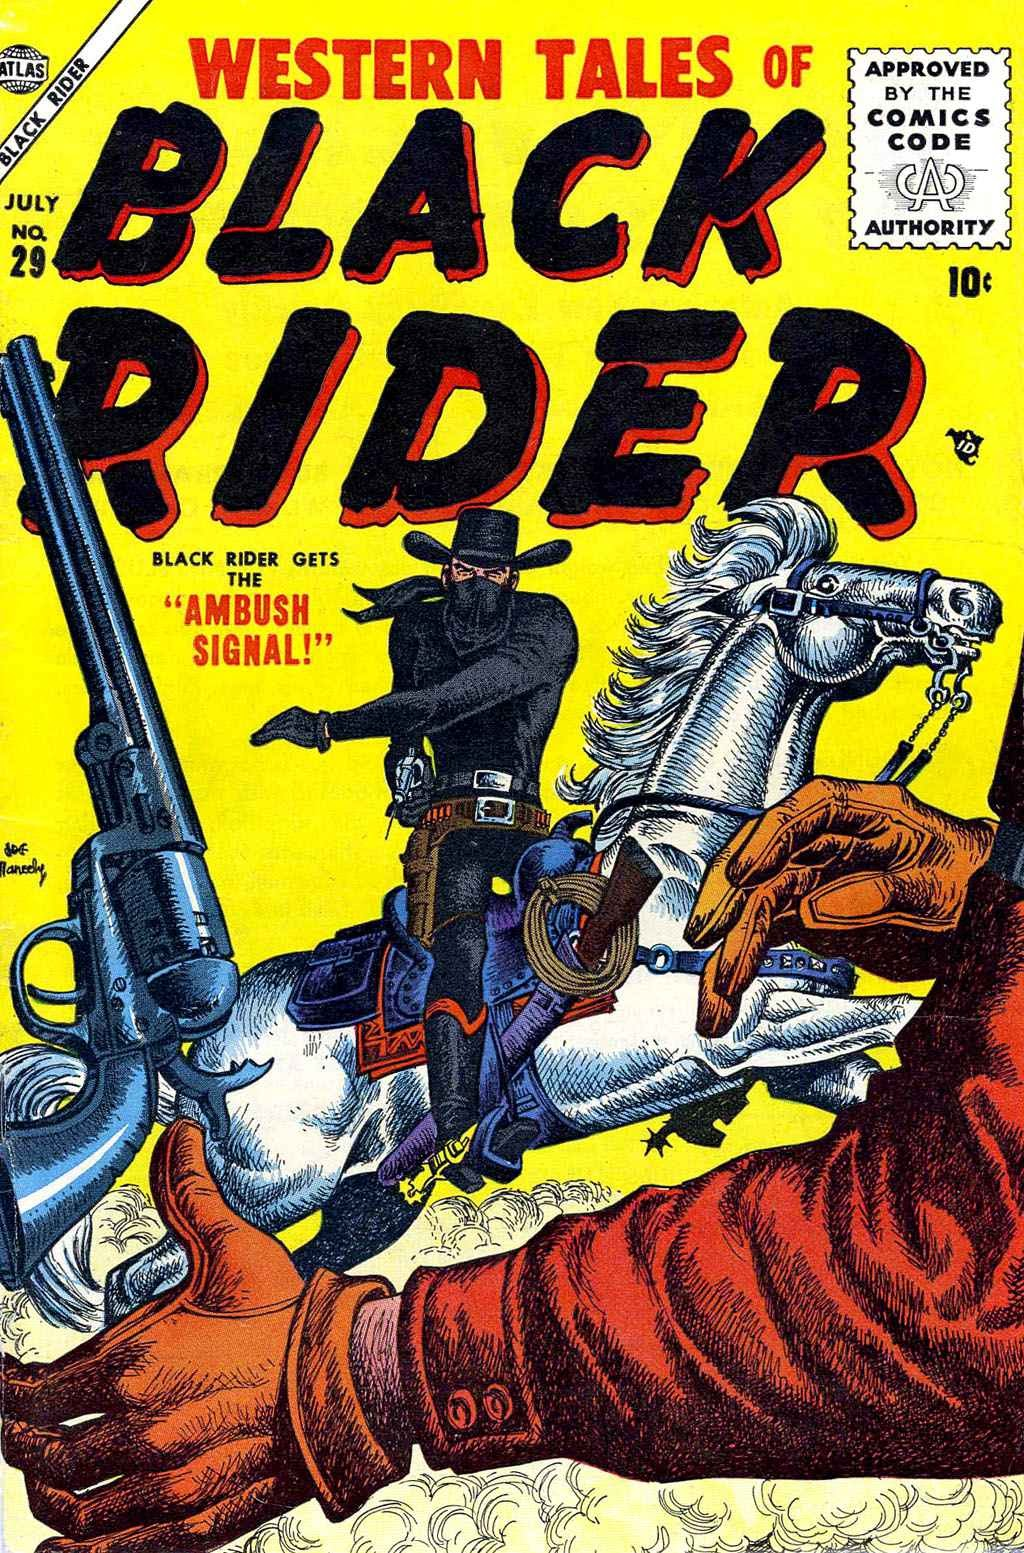 Western Tales of Black Rider 29 Page 1